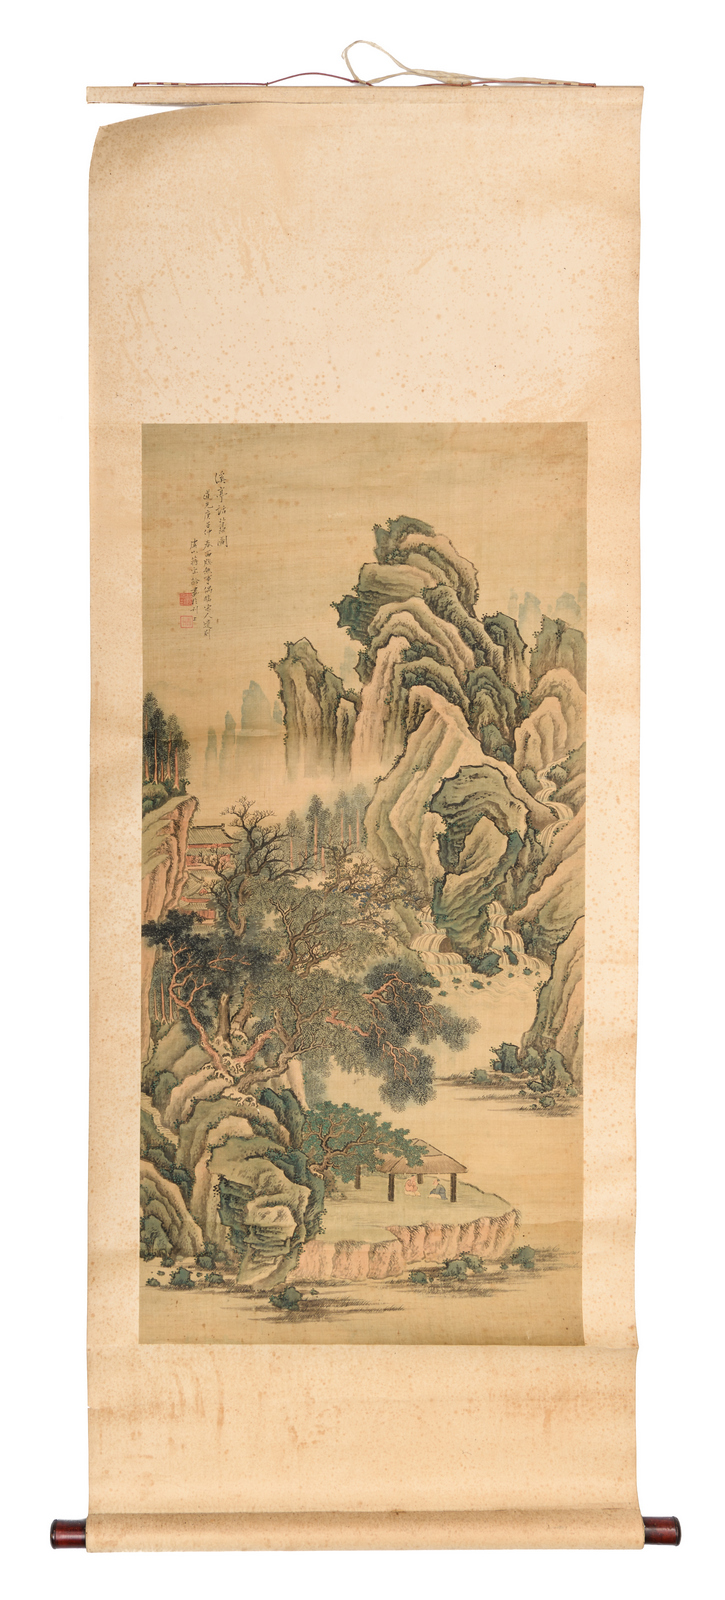 A Chinese scroll, watercolour on textile, depicting figures and pavillions in a mountainous river landscape, signed Jang Bao Ling, 52 x 108,5 (without mount) - 64,5 x 166 cm (with mount)